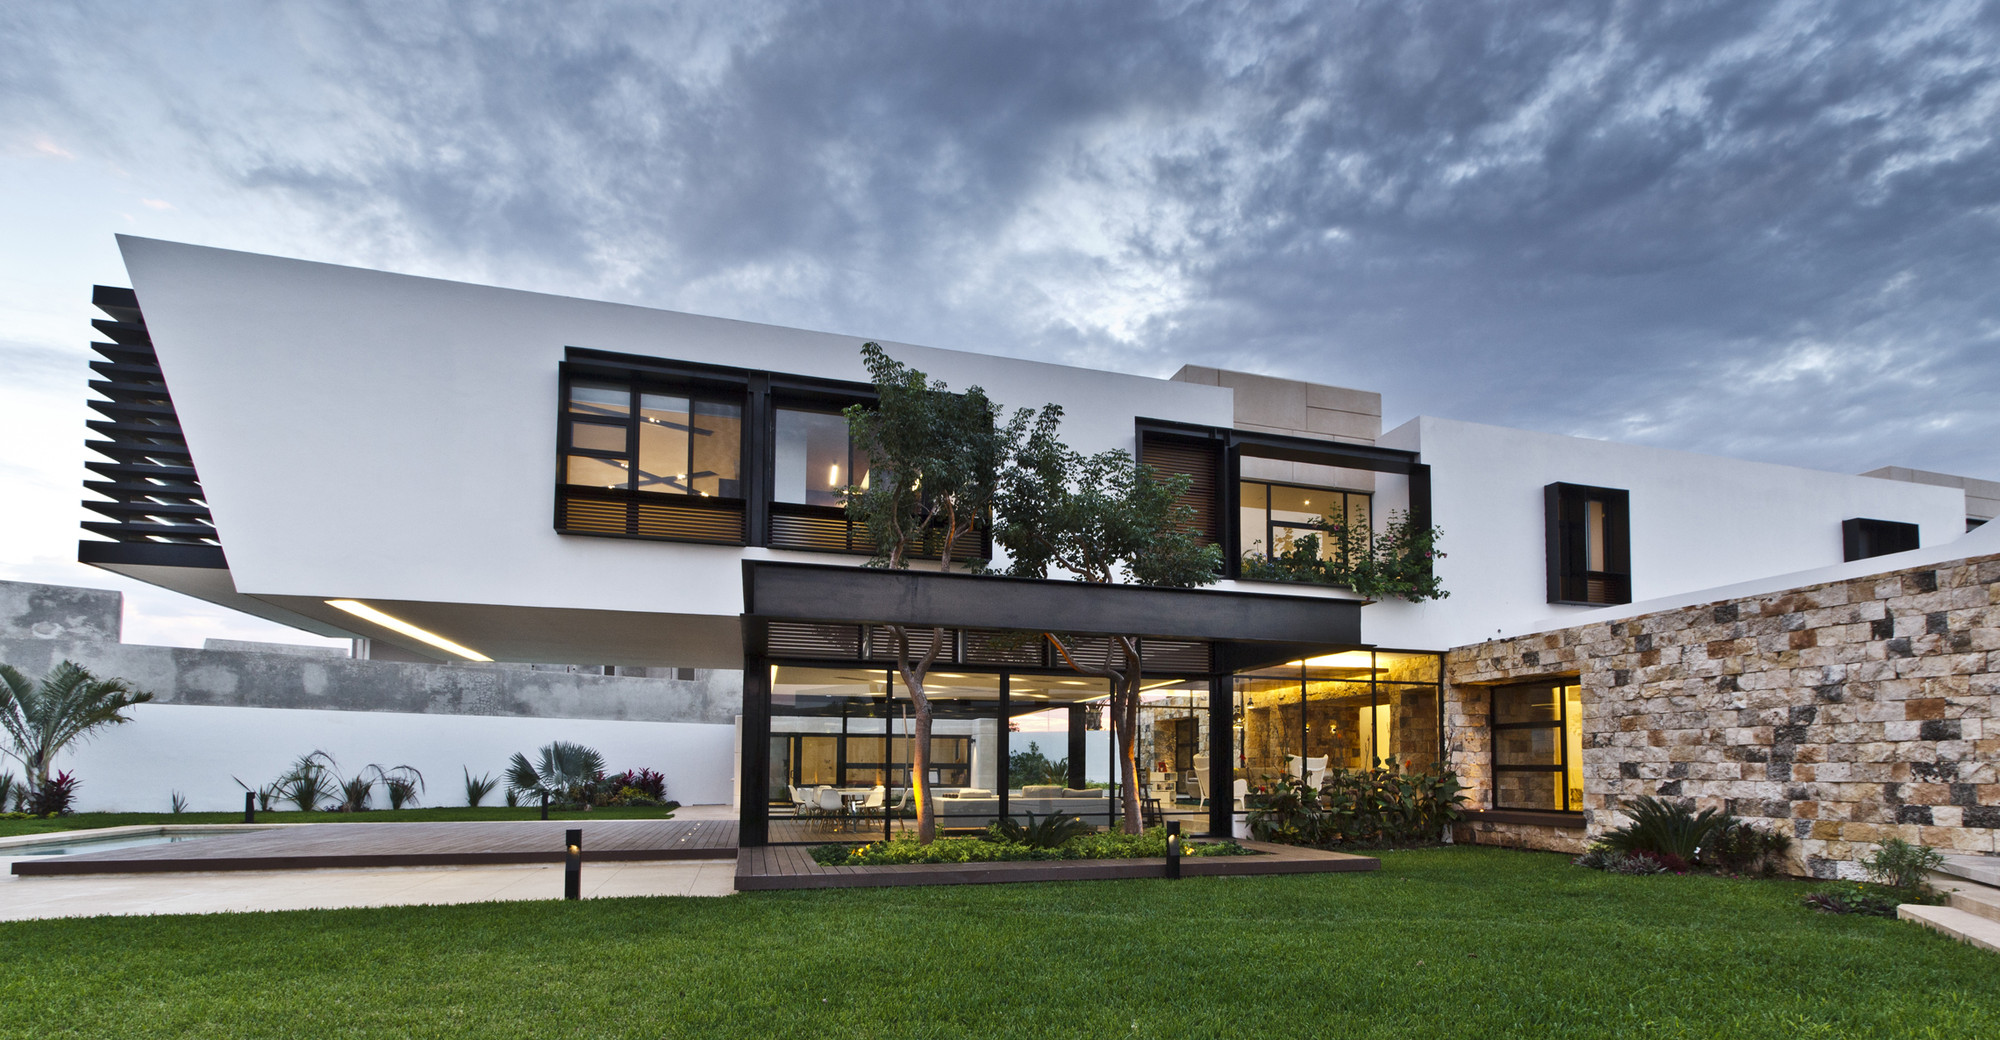 Casa temoz n carrillo arquitectos y asociados for Case architetti famosi